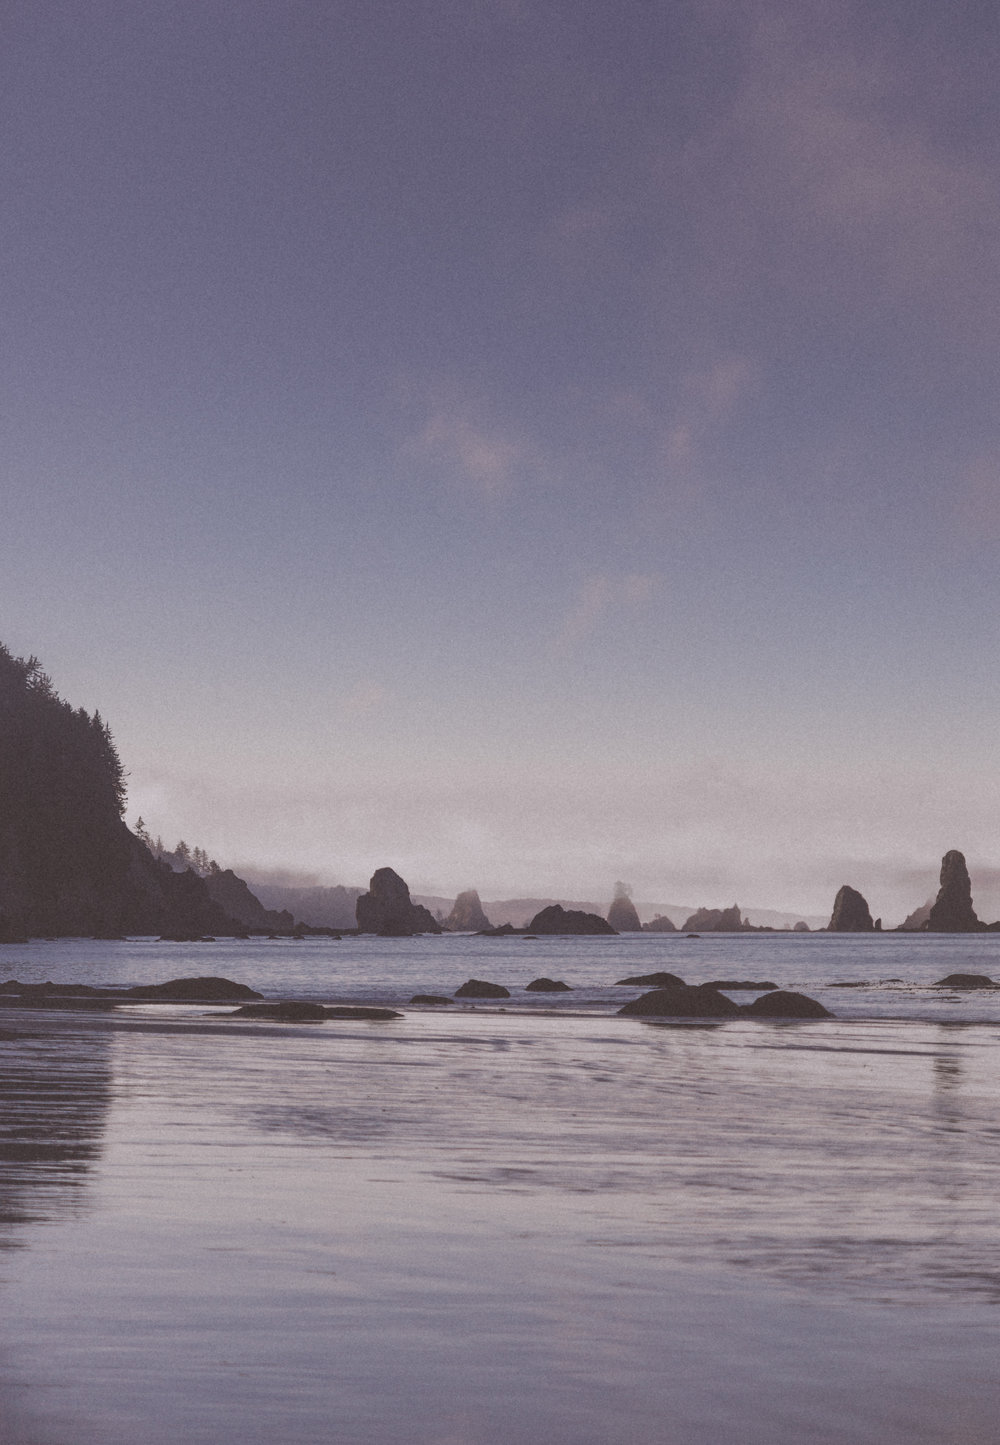 Sunrise from La Push